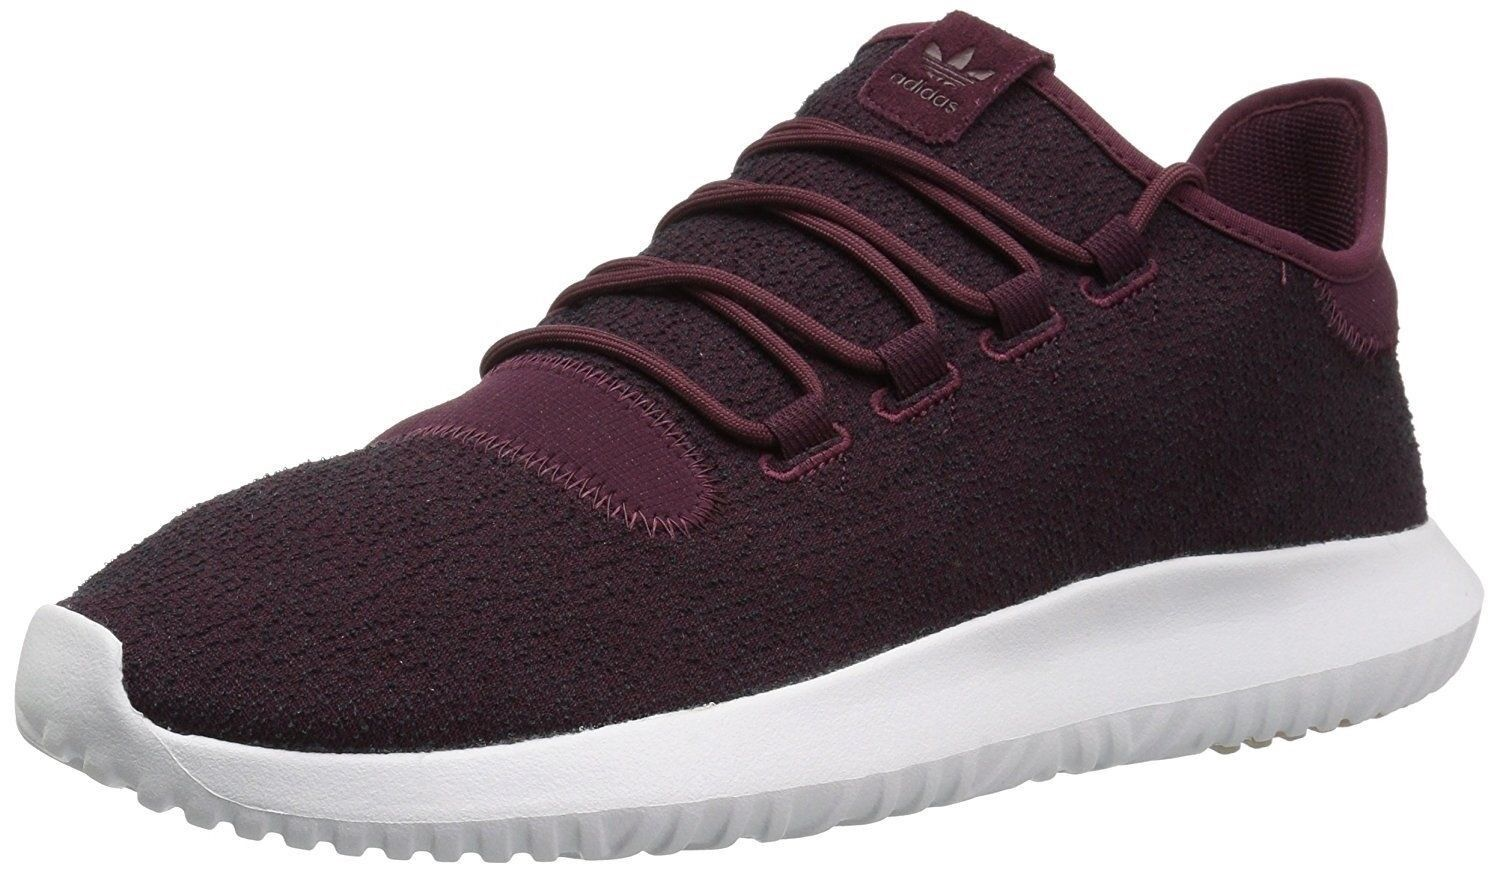 Men Athletic Sneakers Adidas Running Shoes Tubular Shadow CK Maroon Red CQ0927